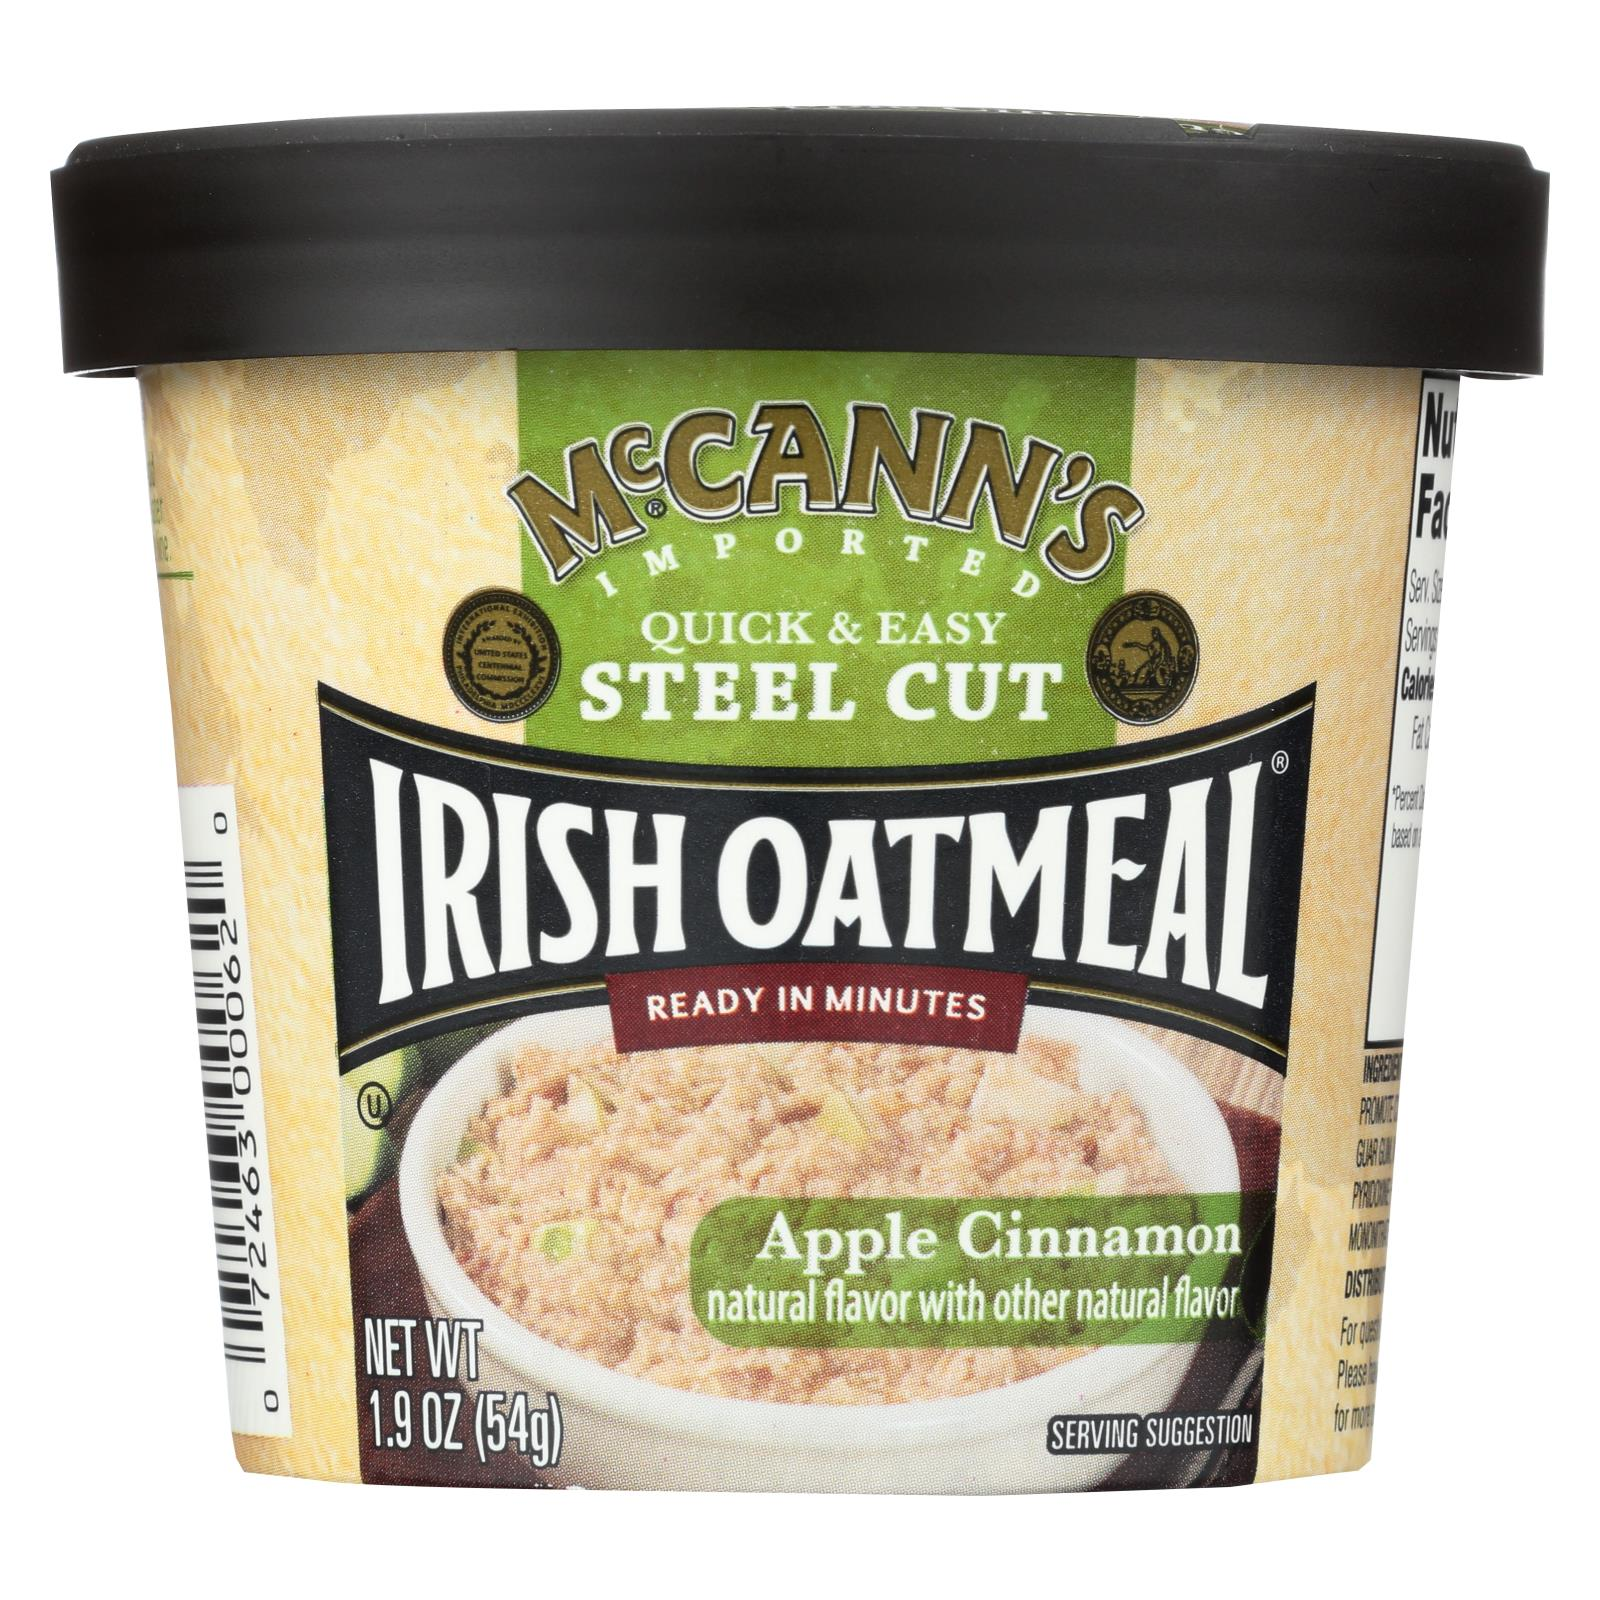 Mccann's Irish Oatmeal Instant Oatmeal Cup - Apple Cinnamon - Case Of 12 - 1.9 Oz HG1889005